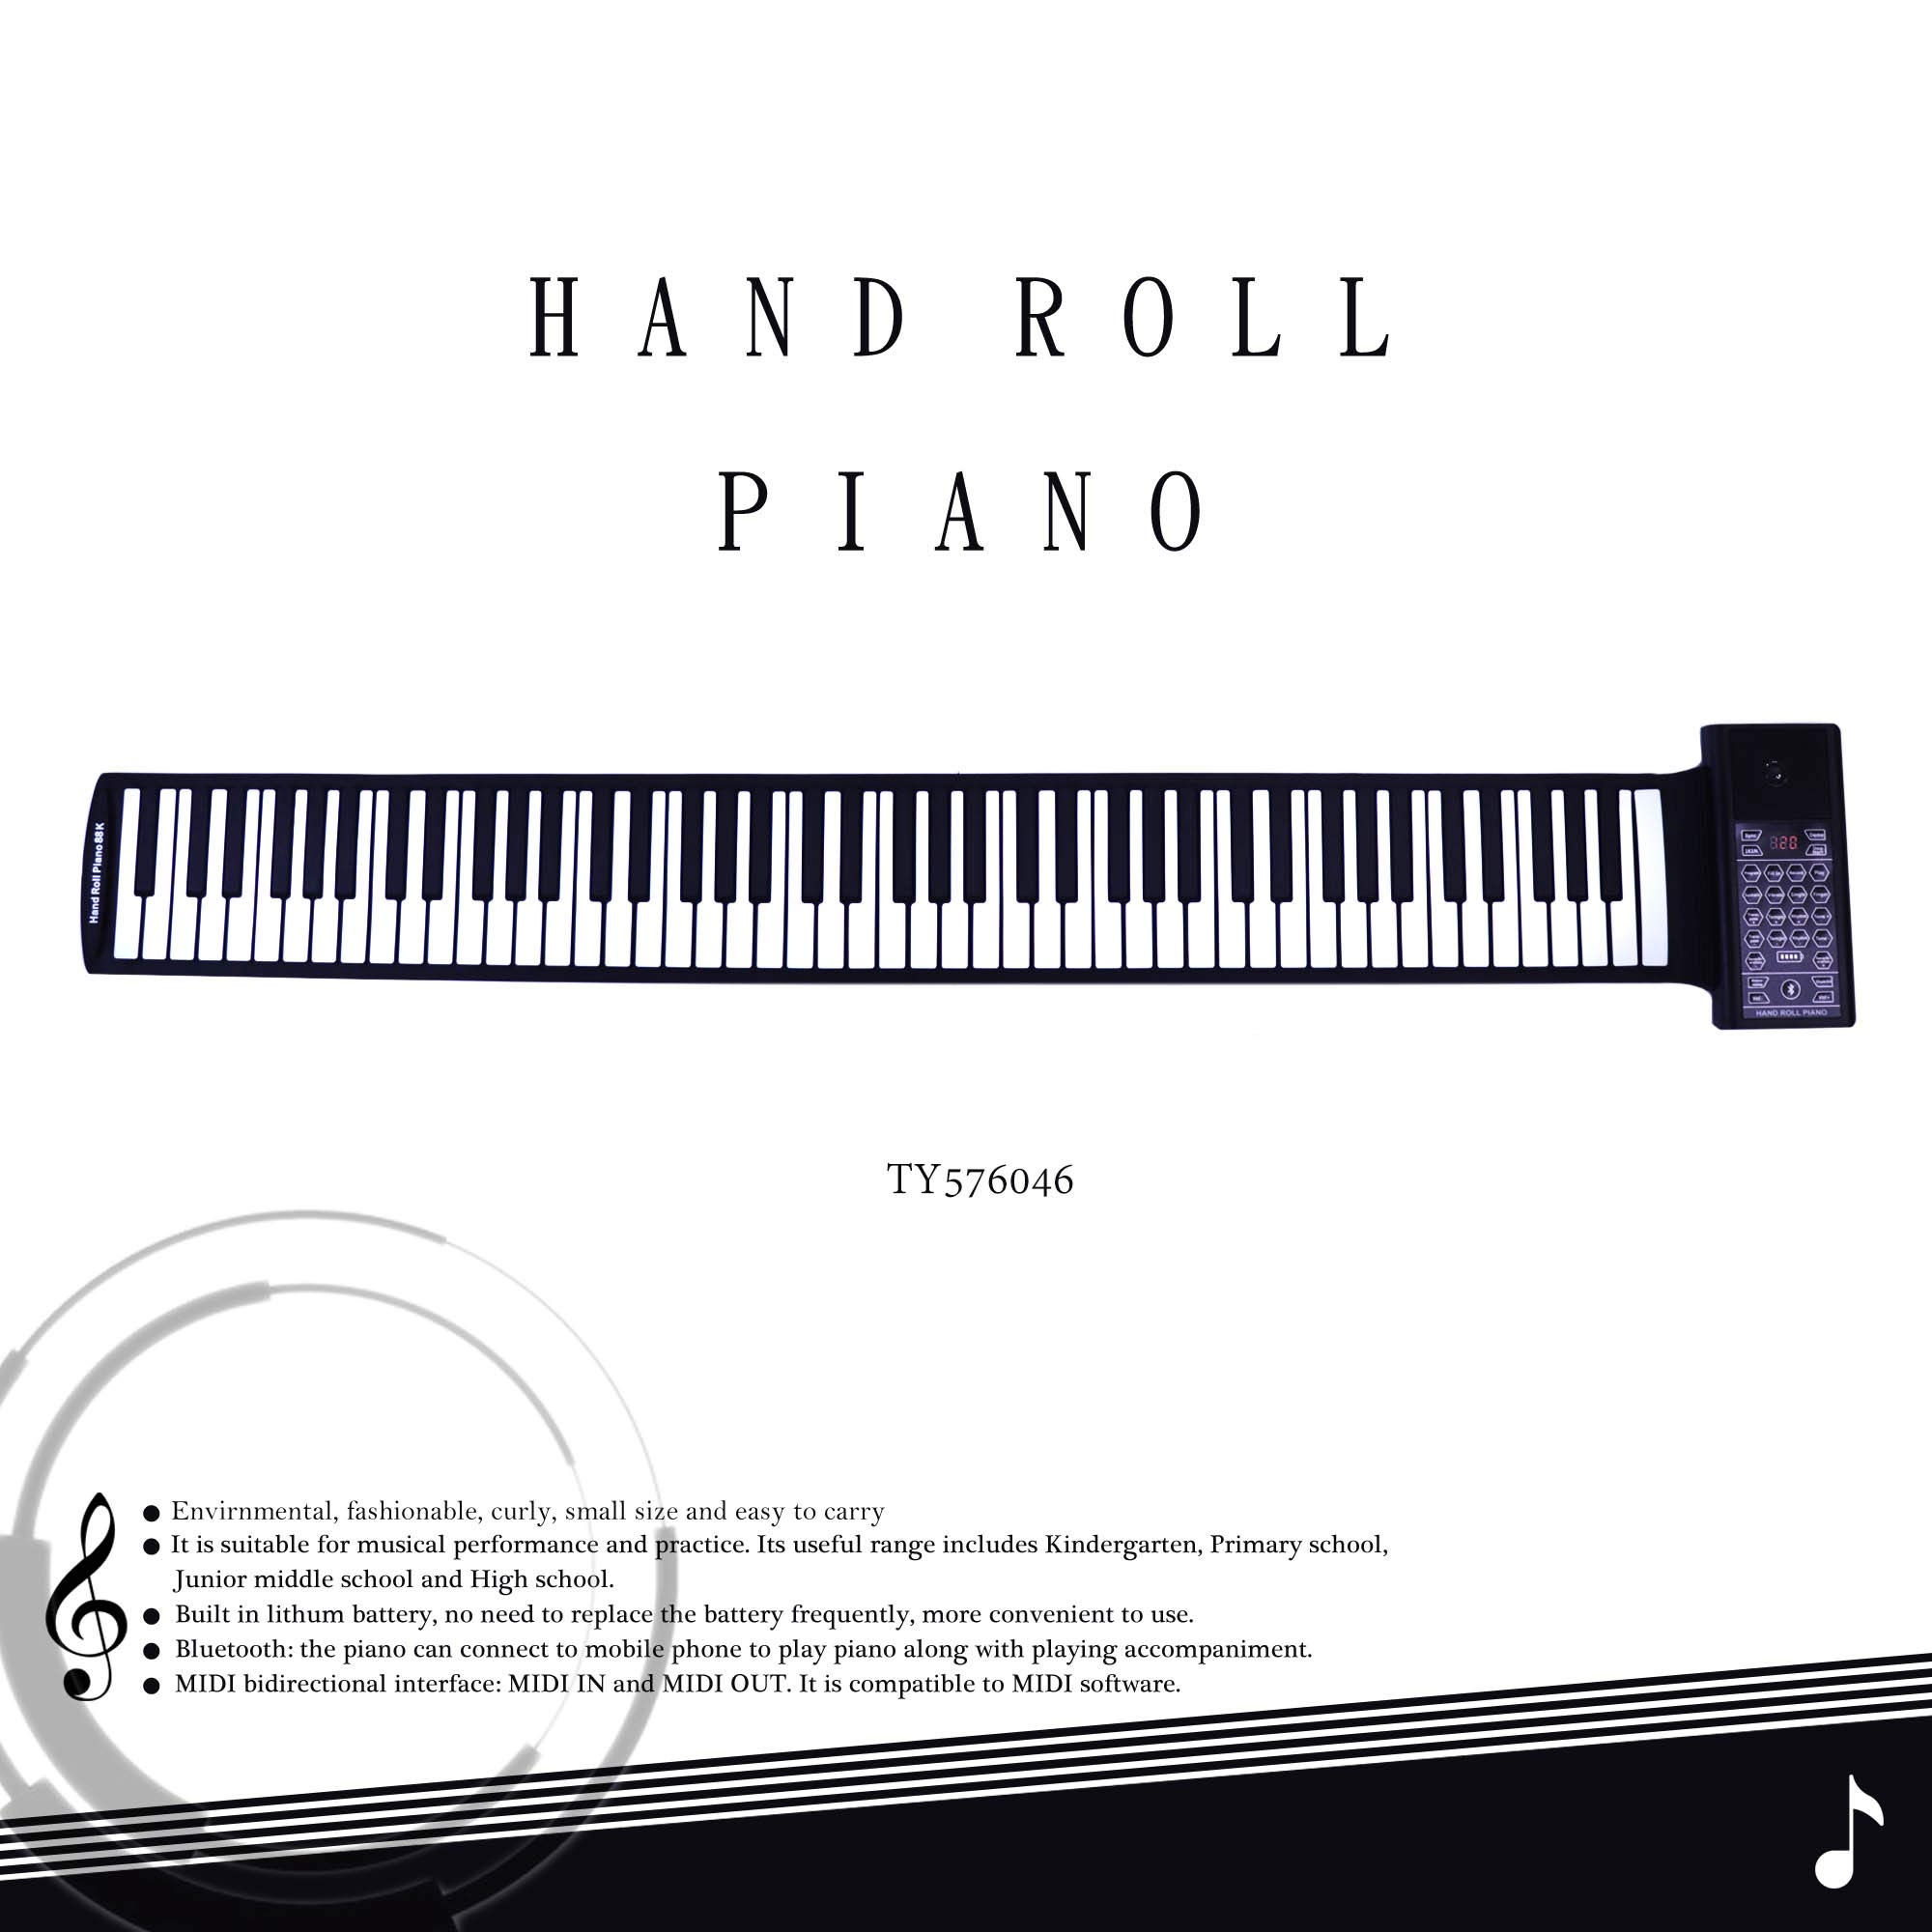 iLearnMusic Roll Up Piano Premium Grade Silicone |THICKENED KEYS | Upgraded Built-in Amplifying Speakers | Portable Piano Keyboard MIDI USB (88 Keys) by Kiker Music (Image #3)